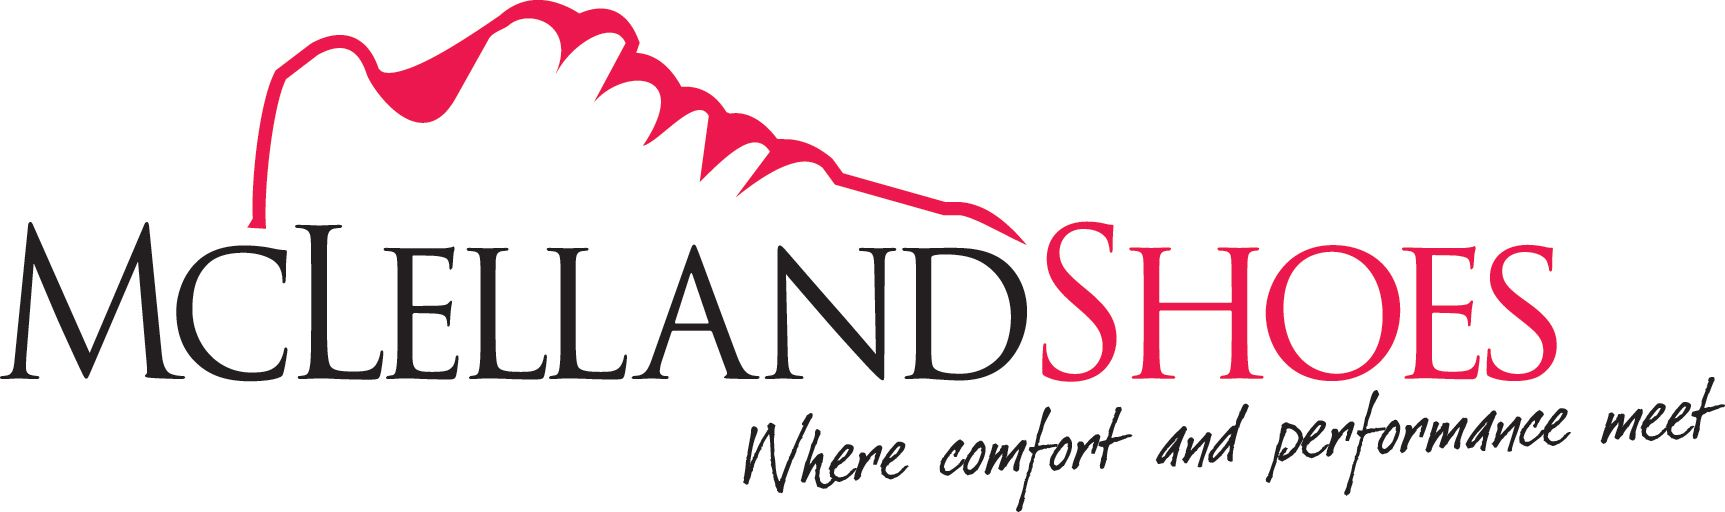 McLelland Shoes Gift Certificate Image